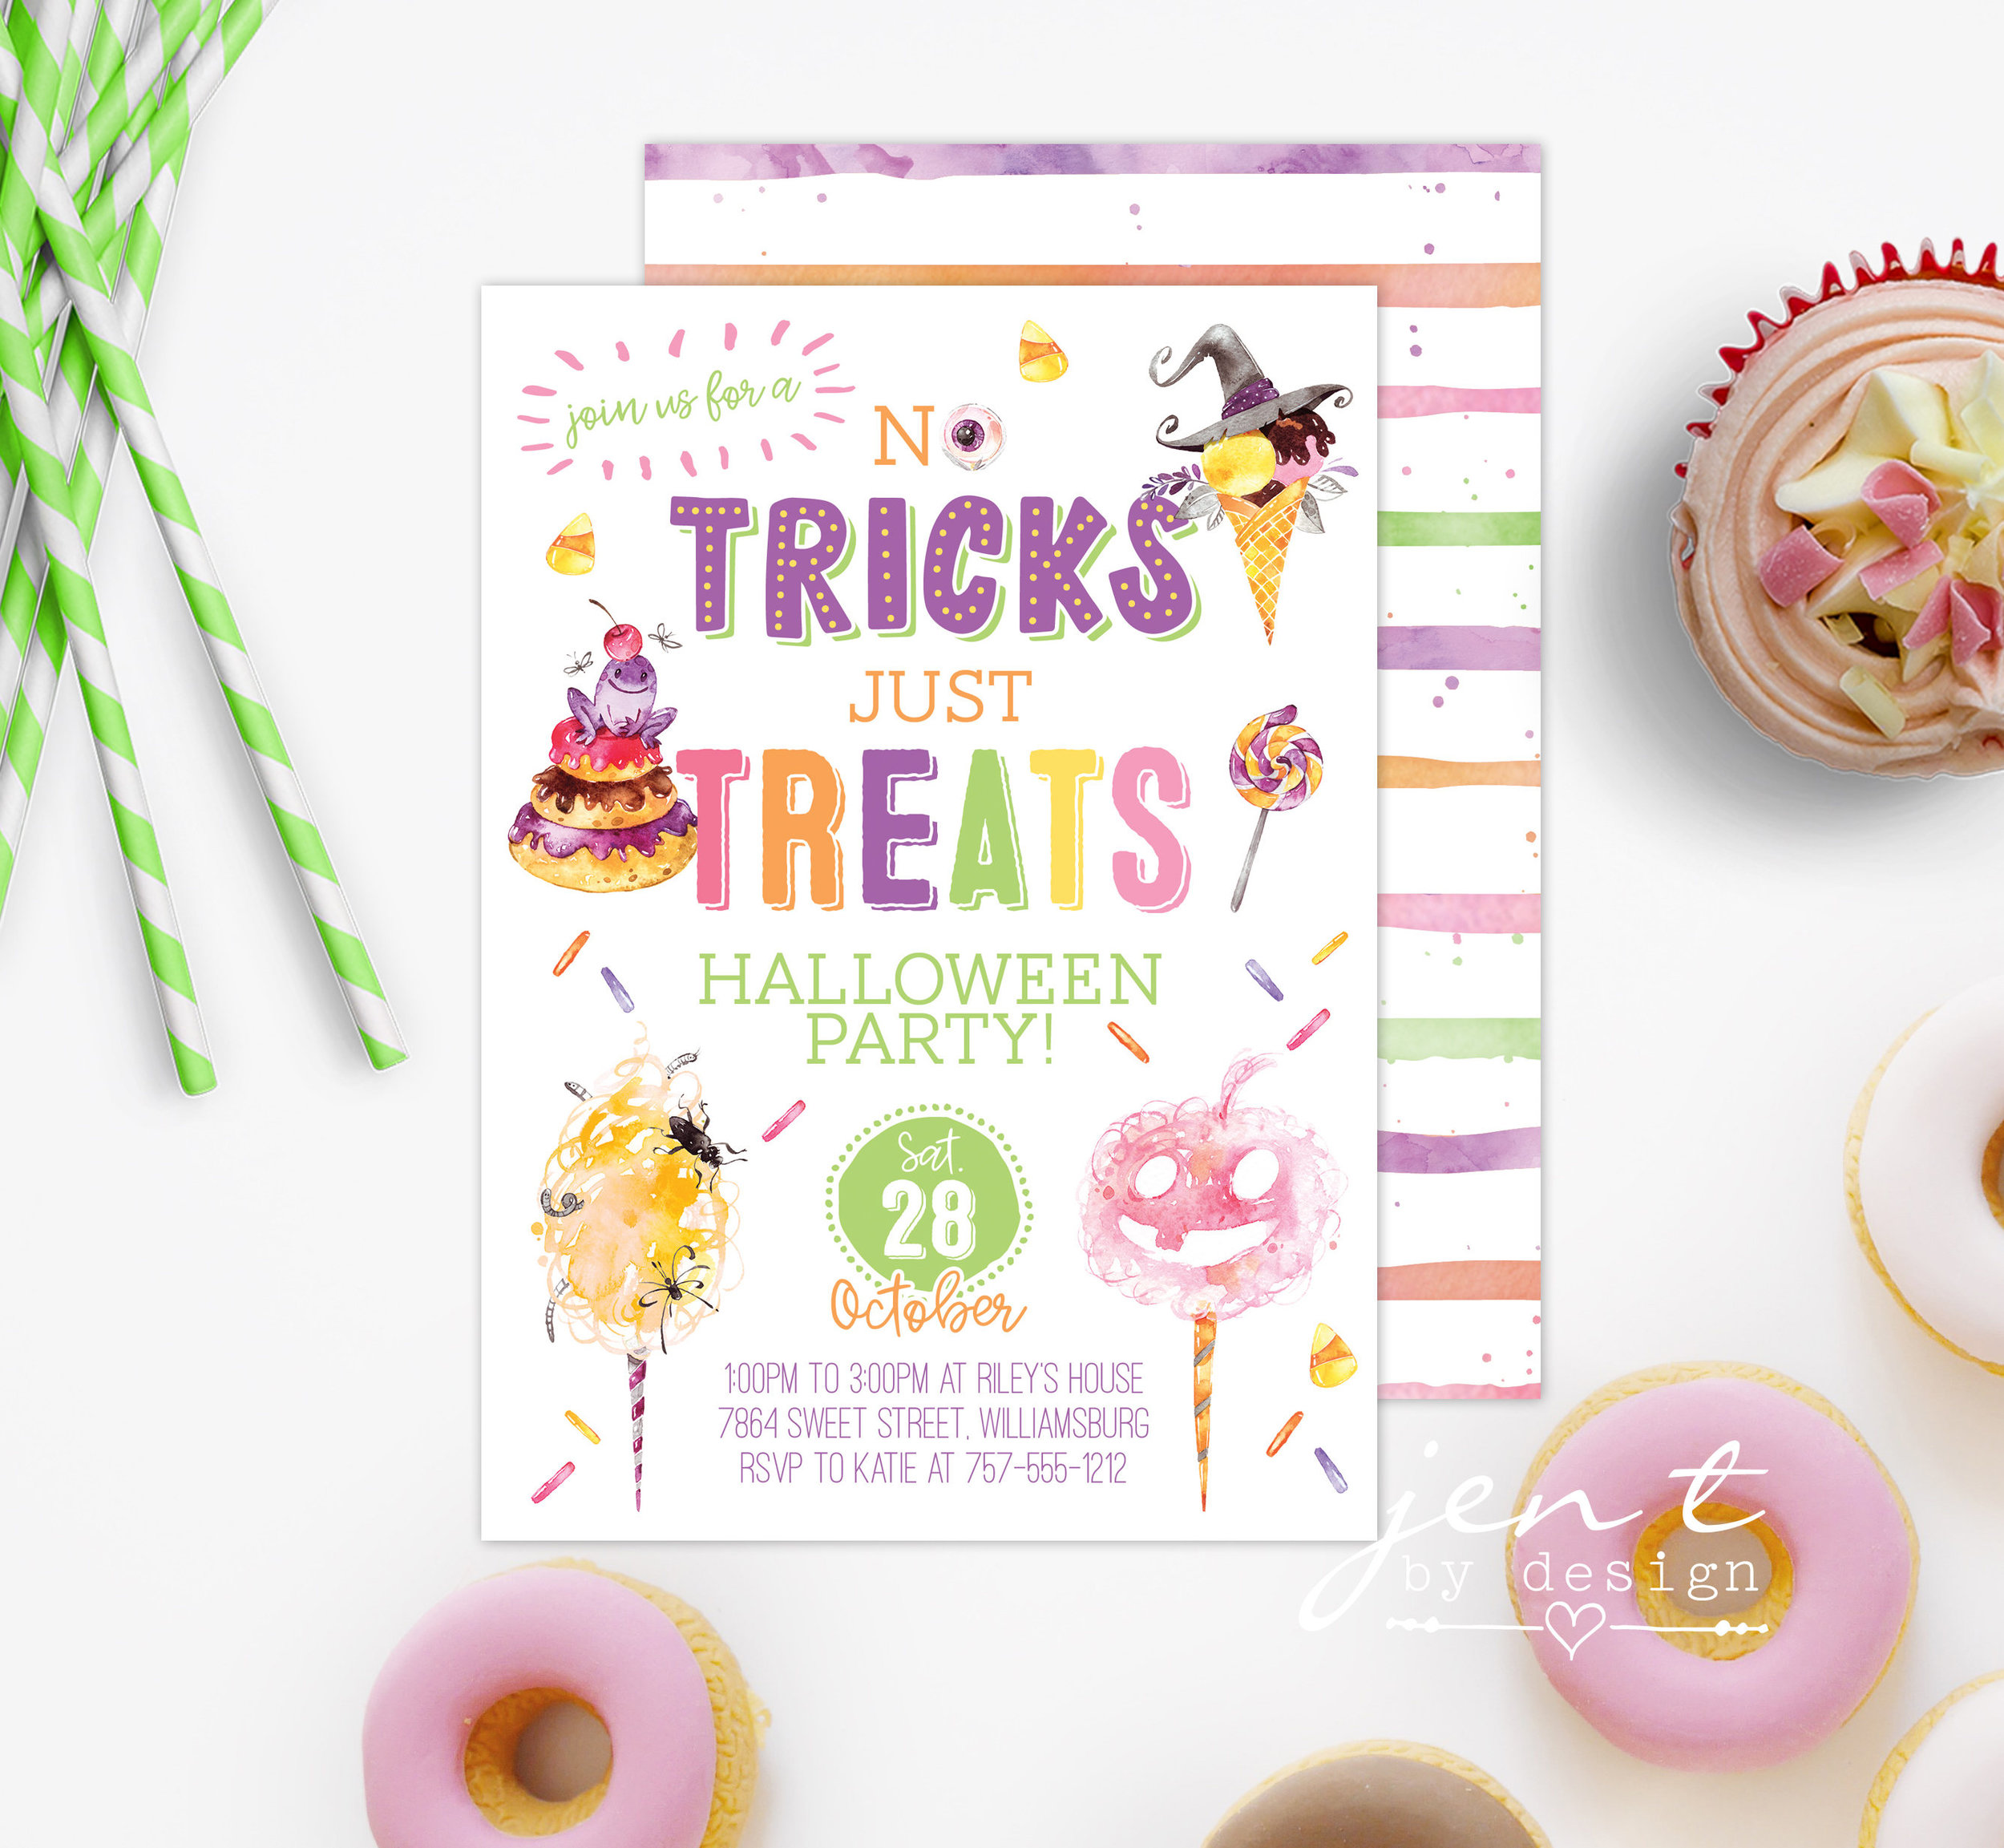 No Tricks Just Treats halloween party invitation from Jen T by Design / from Halloween Party Invitations that Guest Will Love / Halloween Party Printables / Printable Halloween Invitations / as seen on Giggle Hearts www.gigglehearts.com